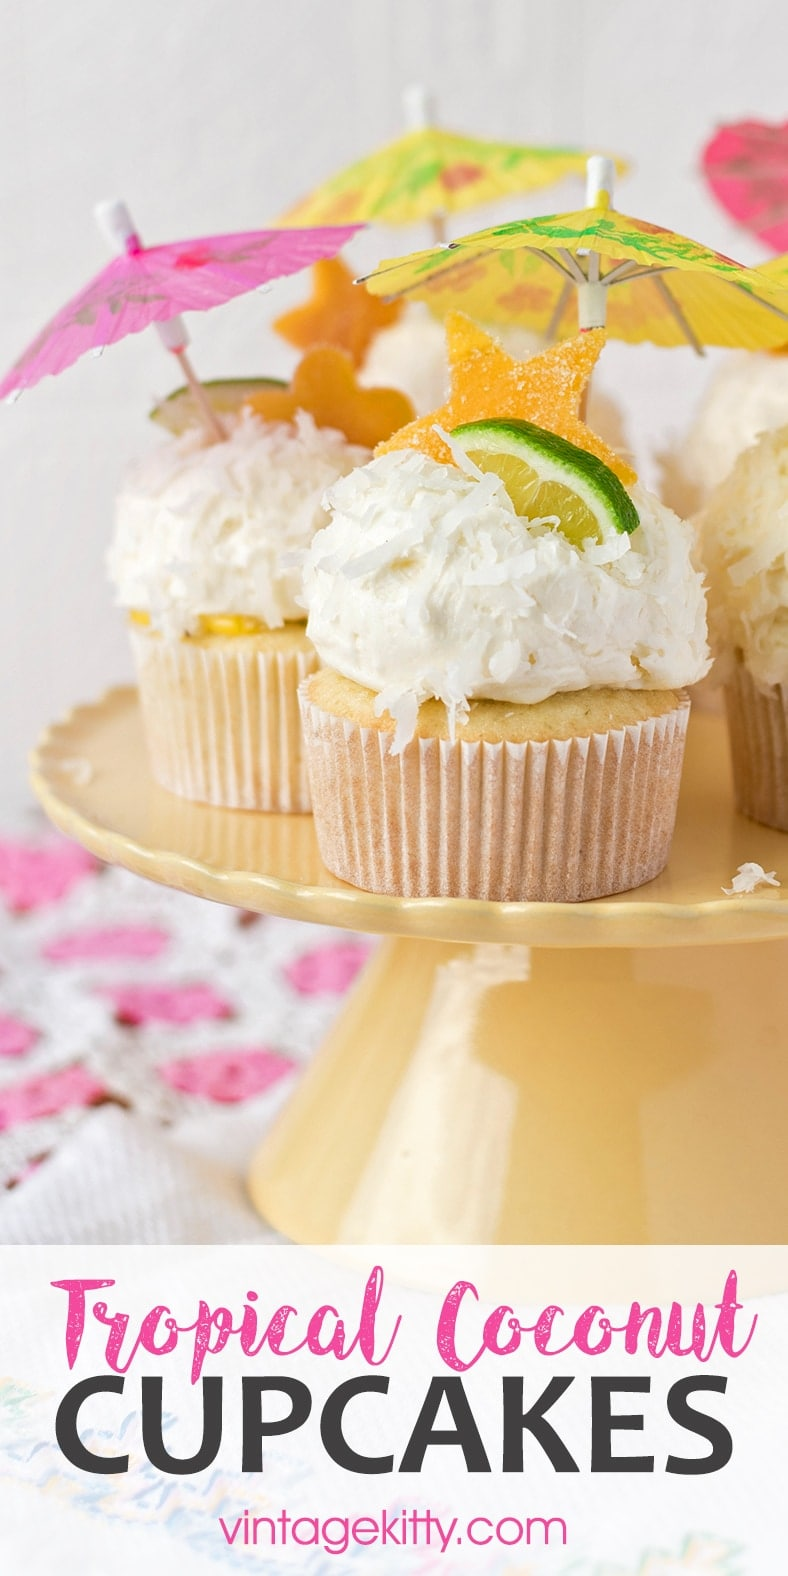 Ideal for parties and special occasions, this recipe for tropical coconut cupcakes is a warm weather treat! They have all the flavors of summer in a pretty snowy cupcake! #coconutcupcakes #summertreats #tropical #coconutbuttercream #cupcakes